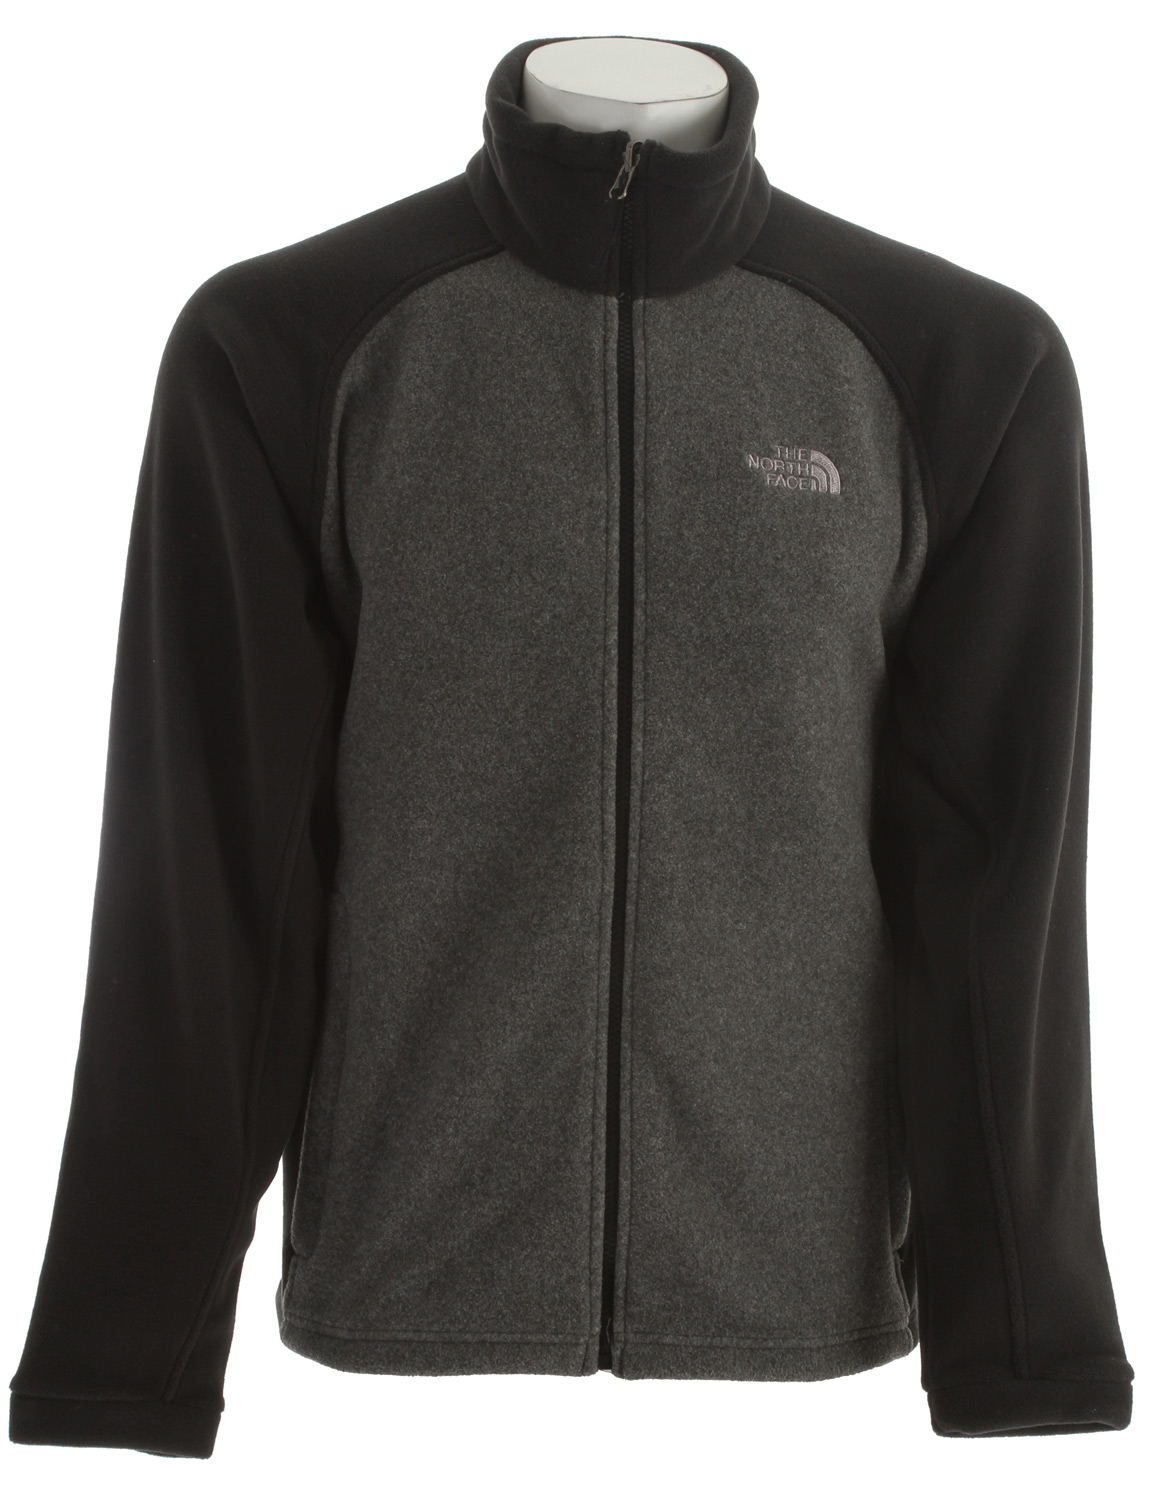 Highly versatile, relaxed-fit jacket offers dependable protection from the coldKey Features of the The North Face Khumbu Jacket: Zip-in compatible integration with complementing garments from The North Face Extremely durable, anti-pill surface Two hand pockets Full-front zip with windflap Hem cinch-cord - $67.95